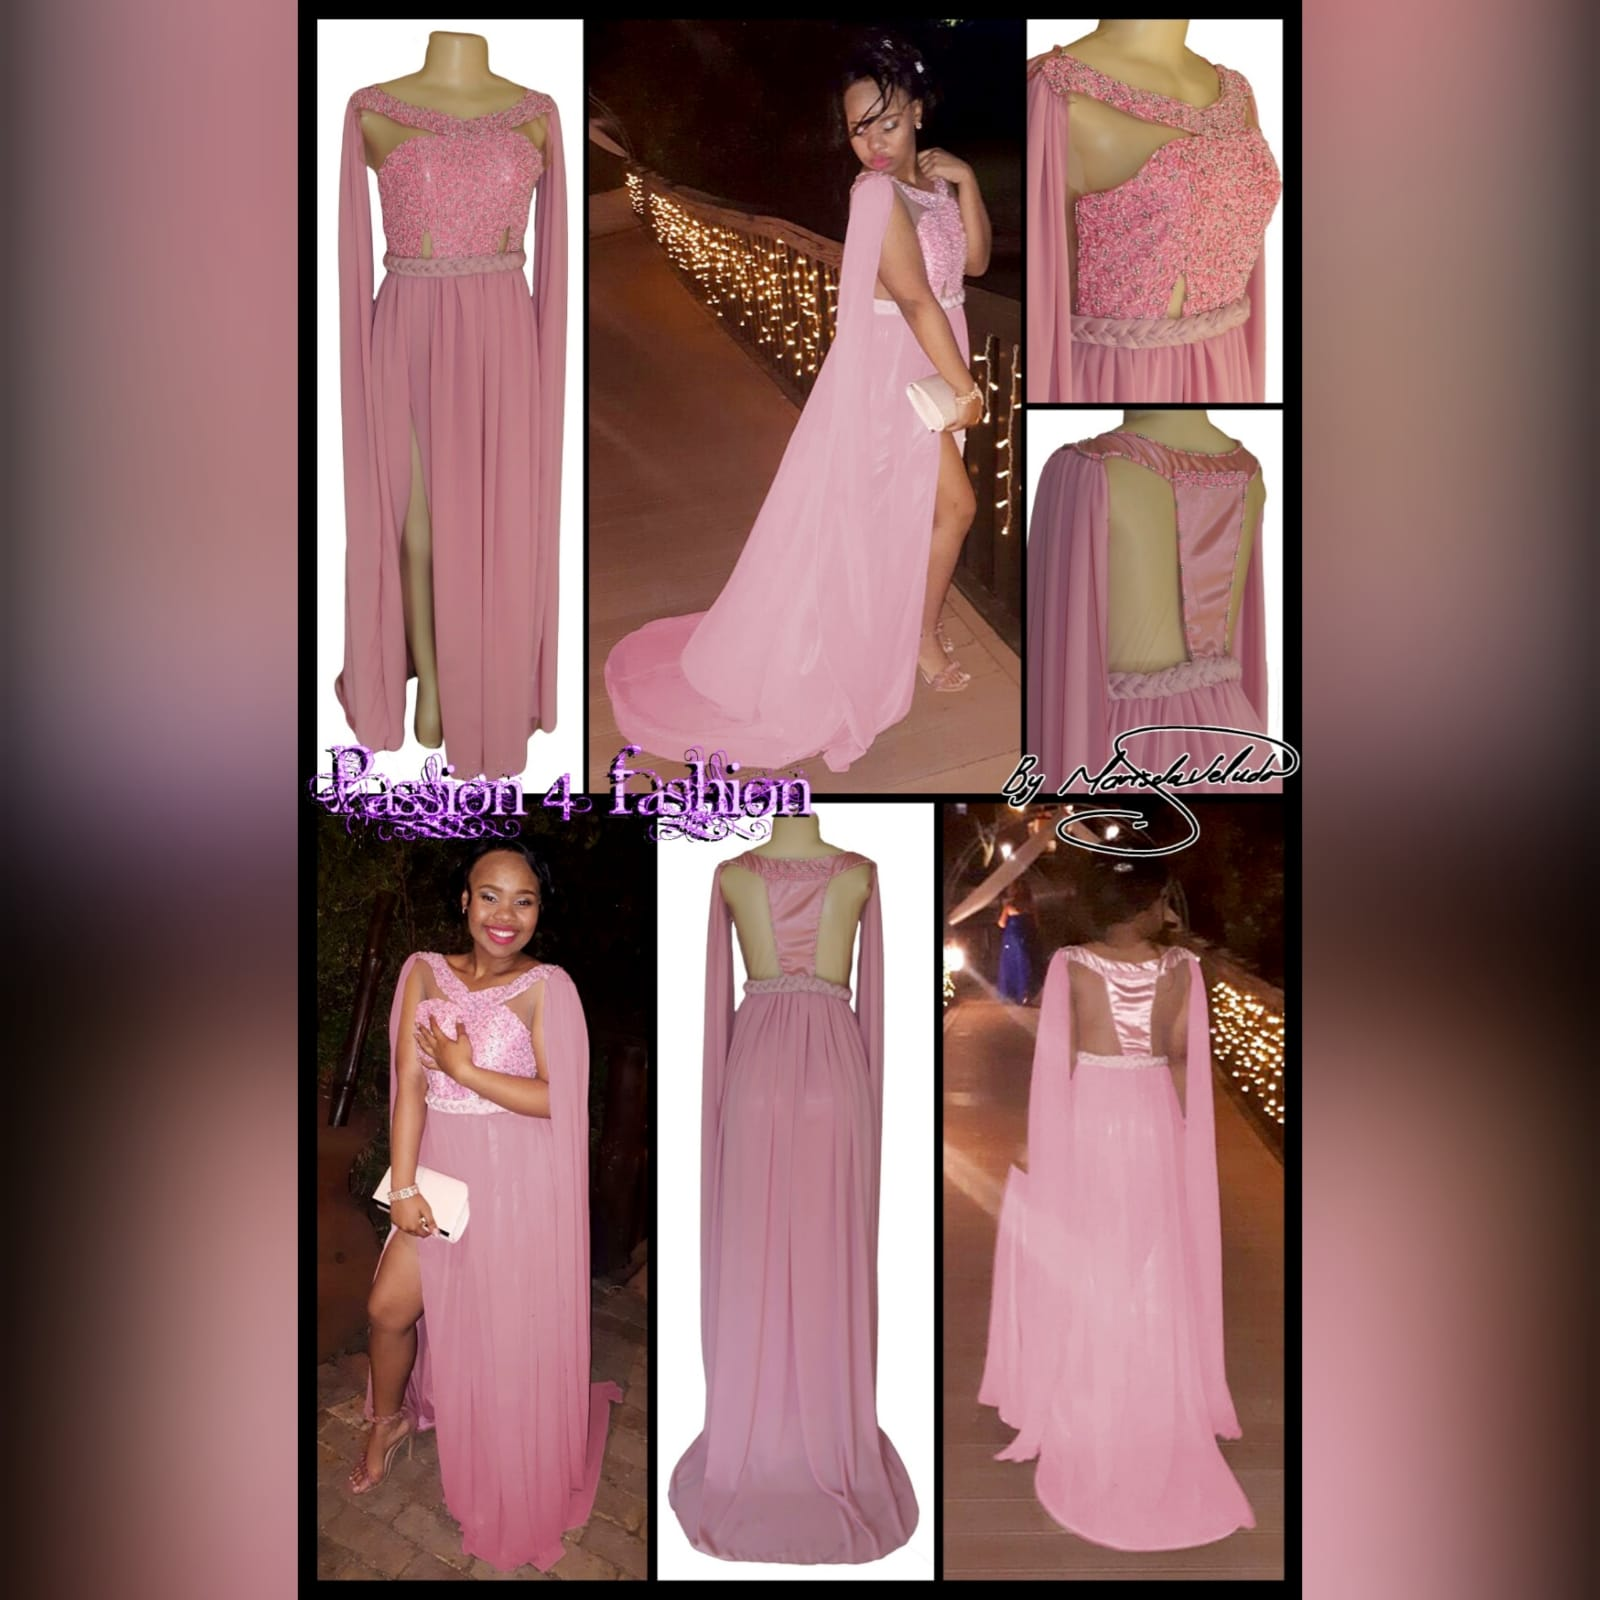 Dusty pink chiffon beaded prom dress 7 dusty pink chiffon beaded prom dress, bateau neckline effect with an illusion back, fully beaded bodice, plaited belt detail with a slit and a train. Shoulders with chiffon draping creating a goddess look.